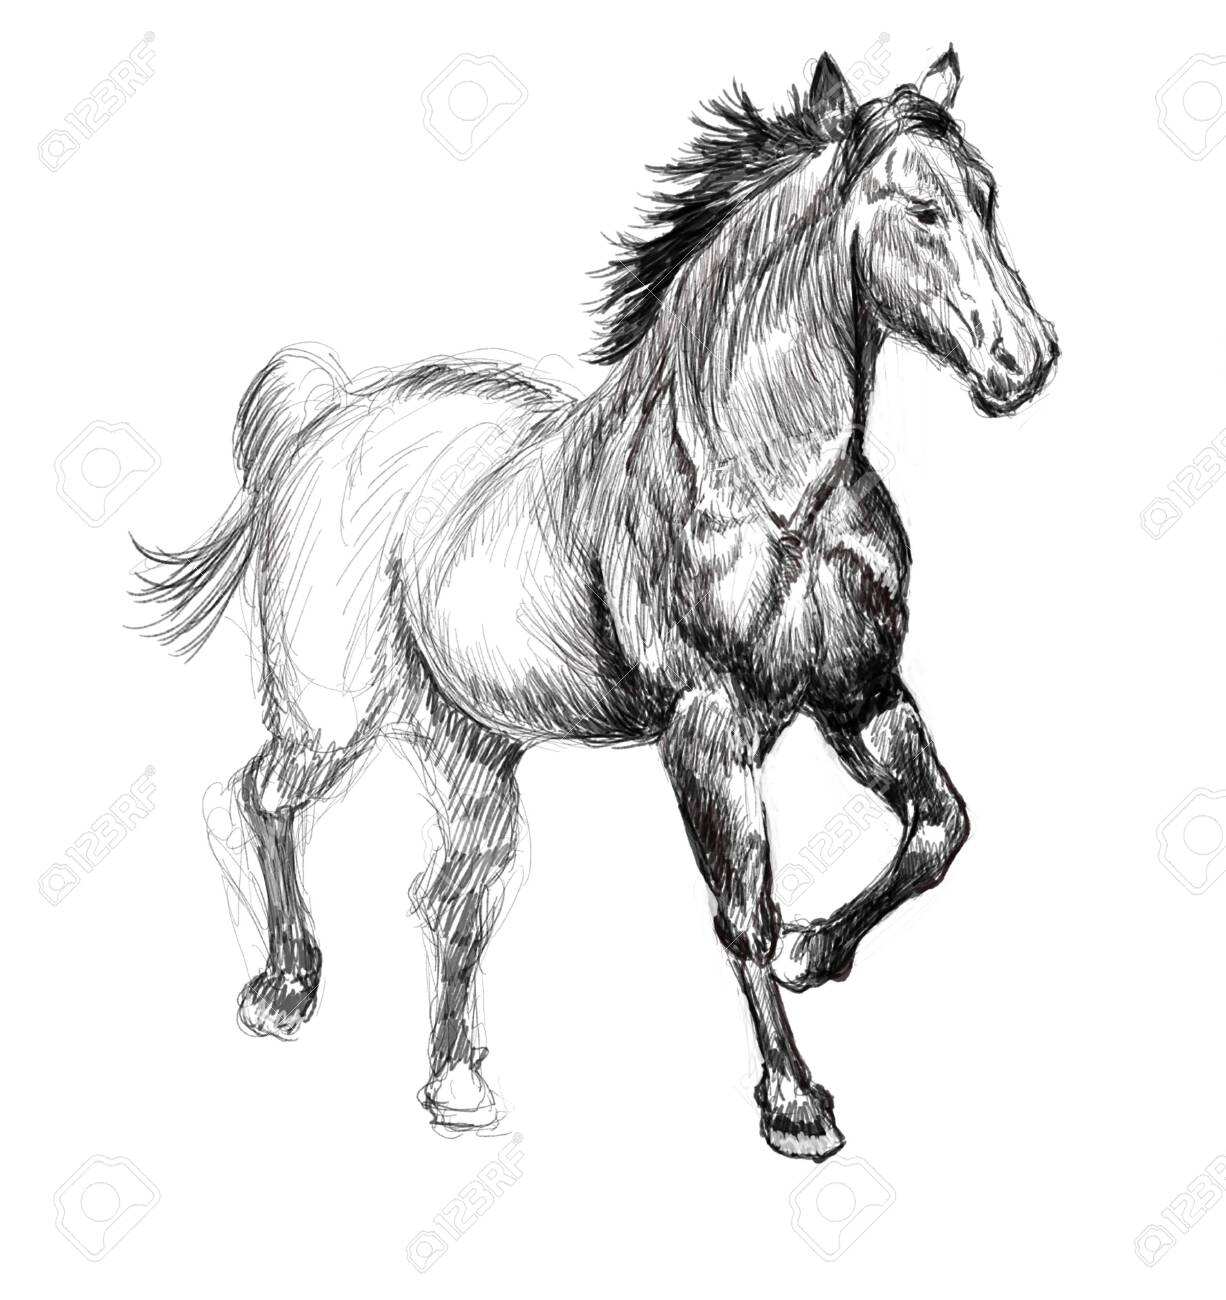 Horse Hand Drawn Illustration Art Design Wall Inspiration Stock Photo Picture And Royalty Free Image Image 135359286